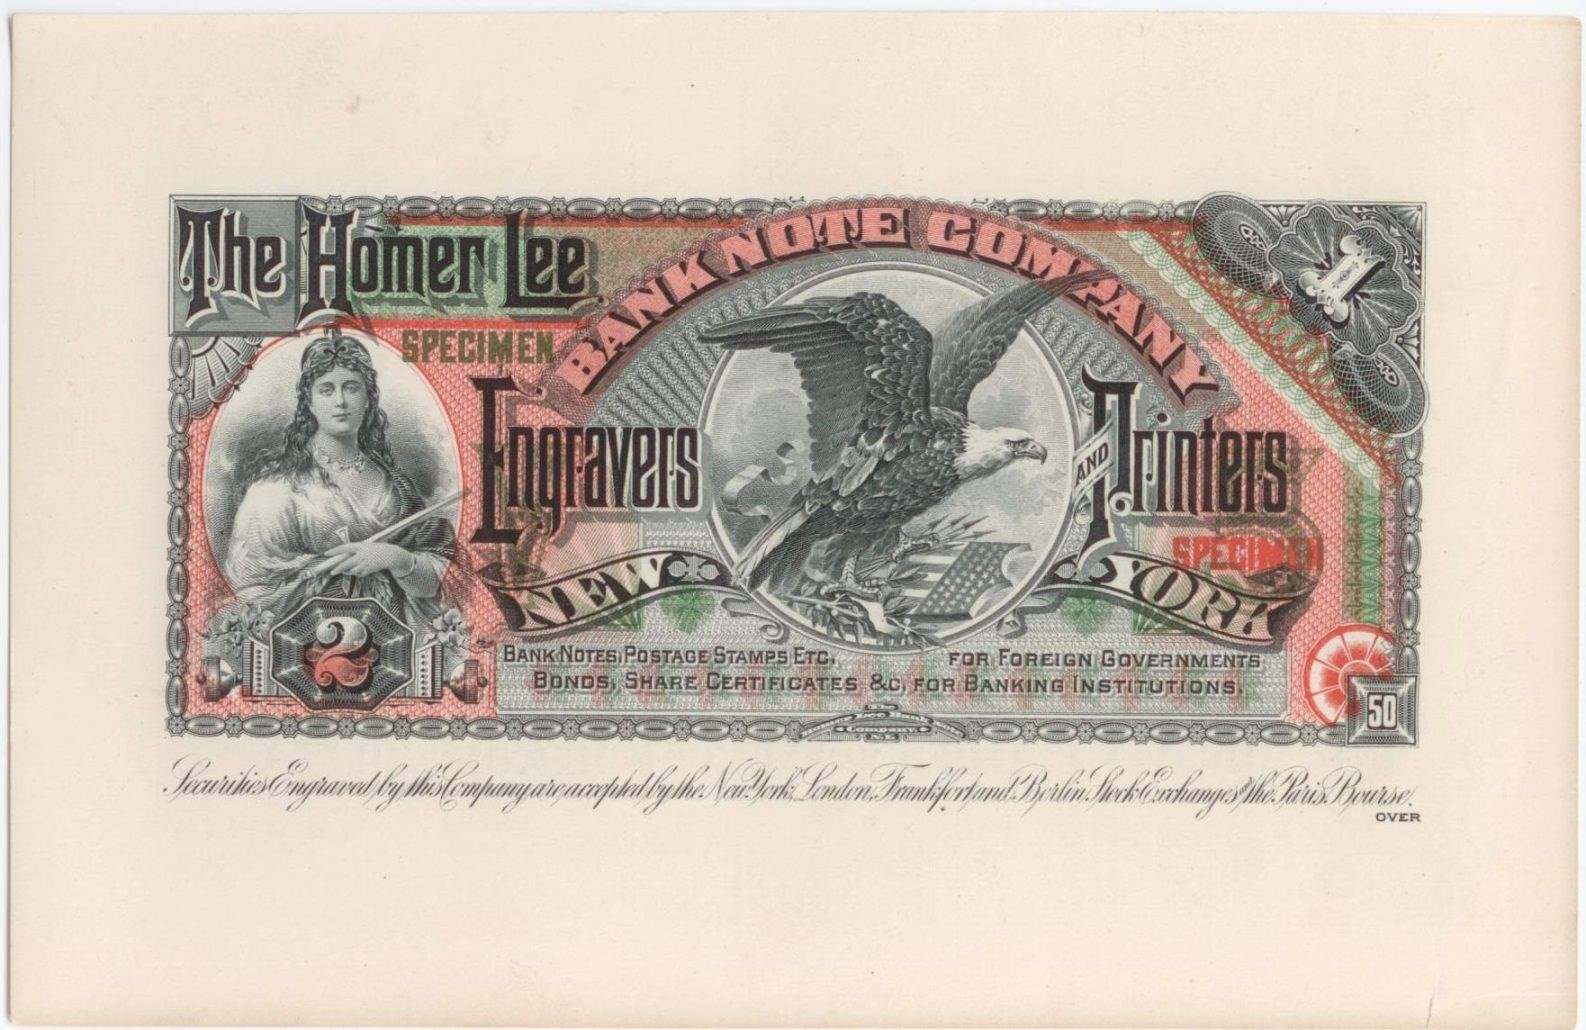 Homer_Lee_Banknote_Specimen_Advertizing_obv_reduced.jpg